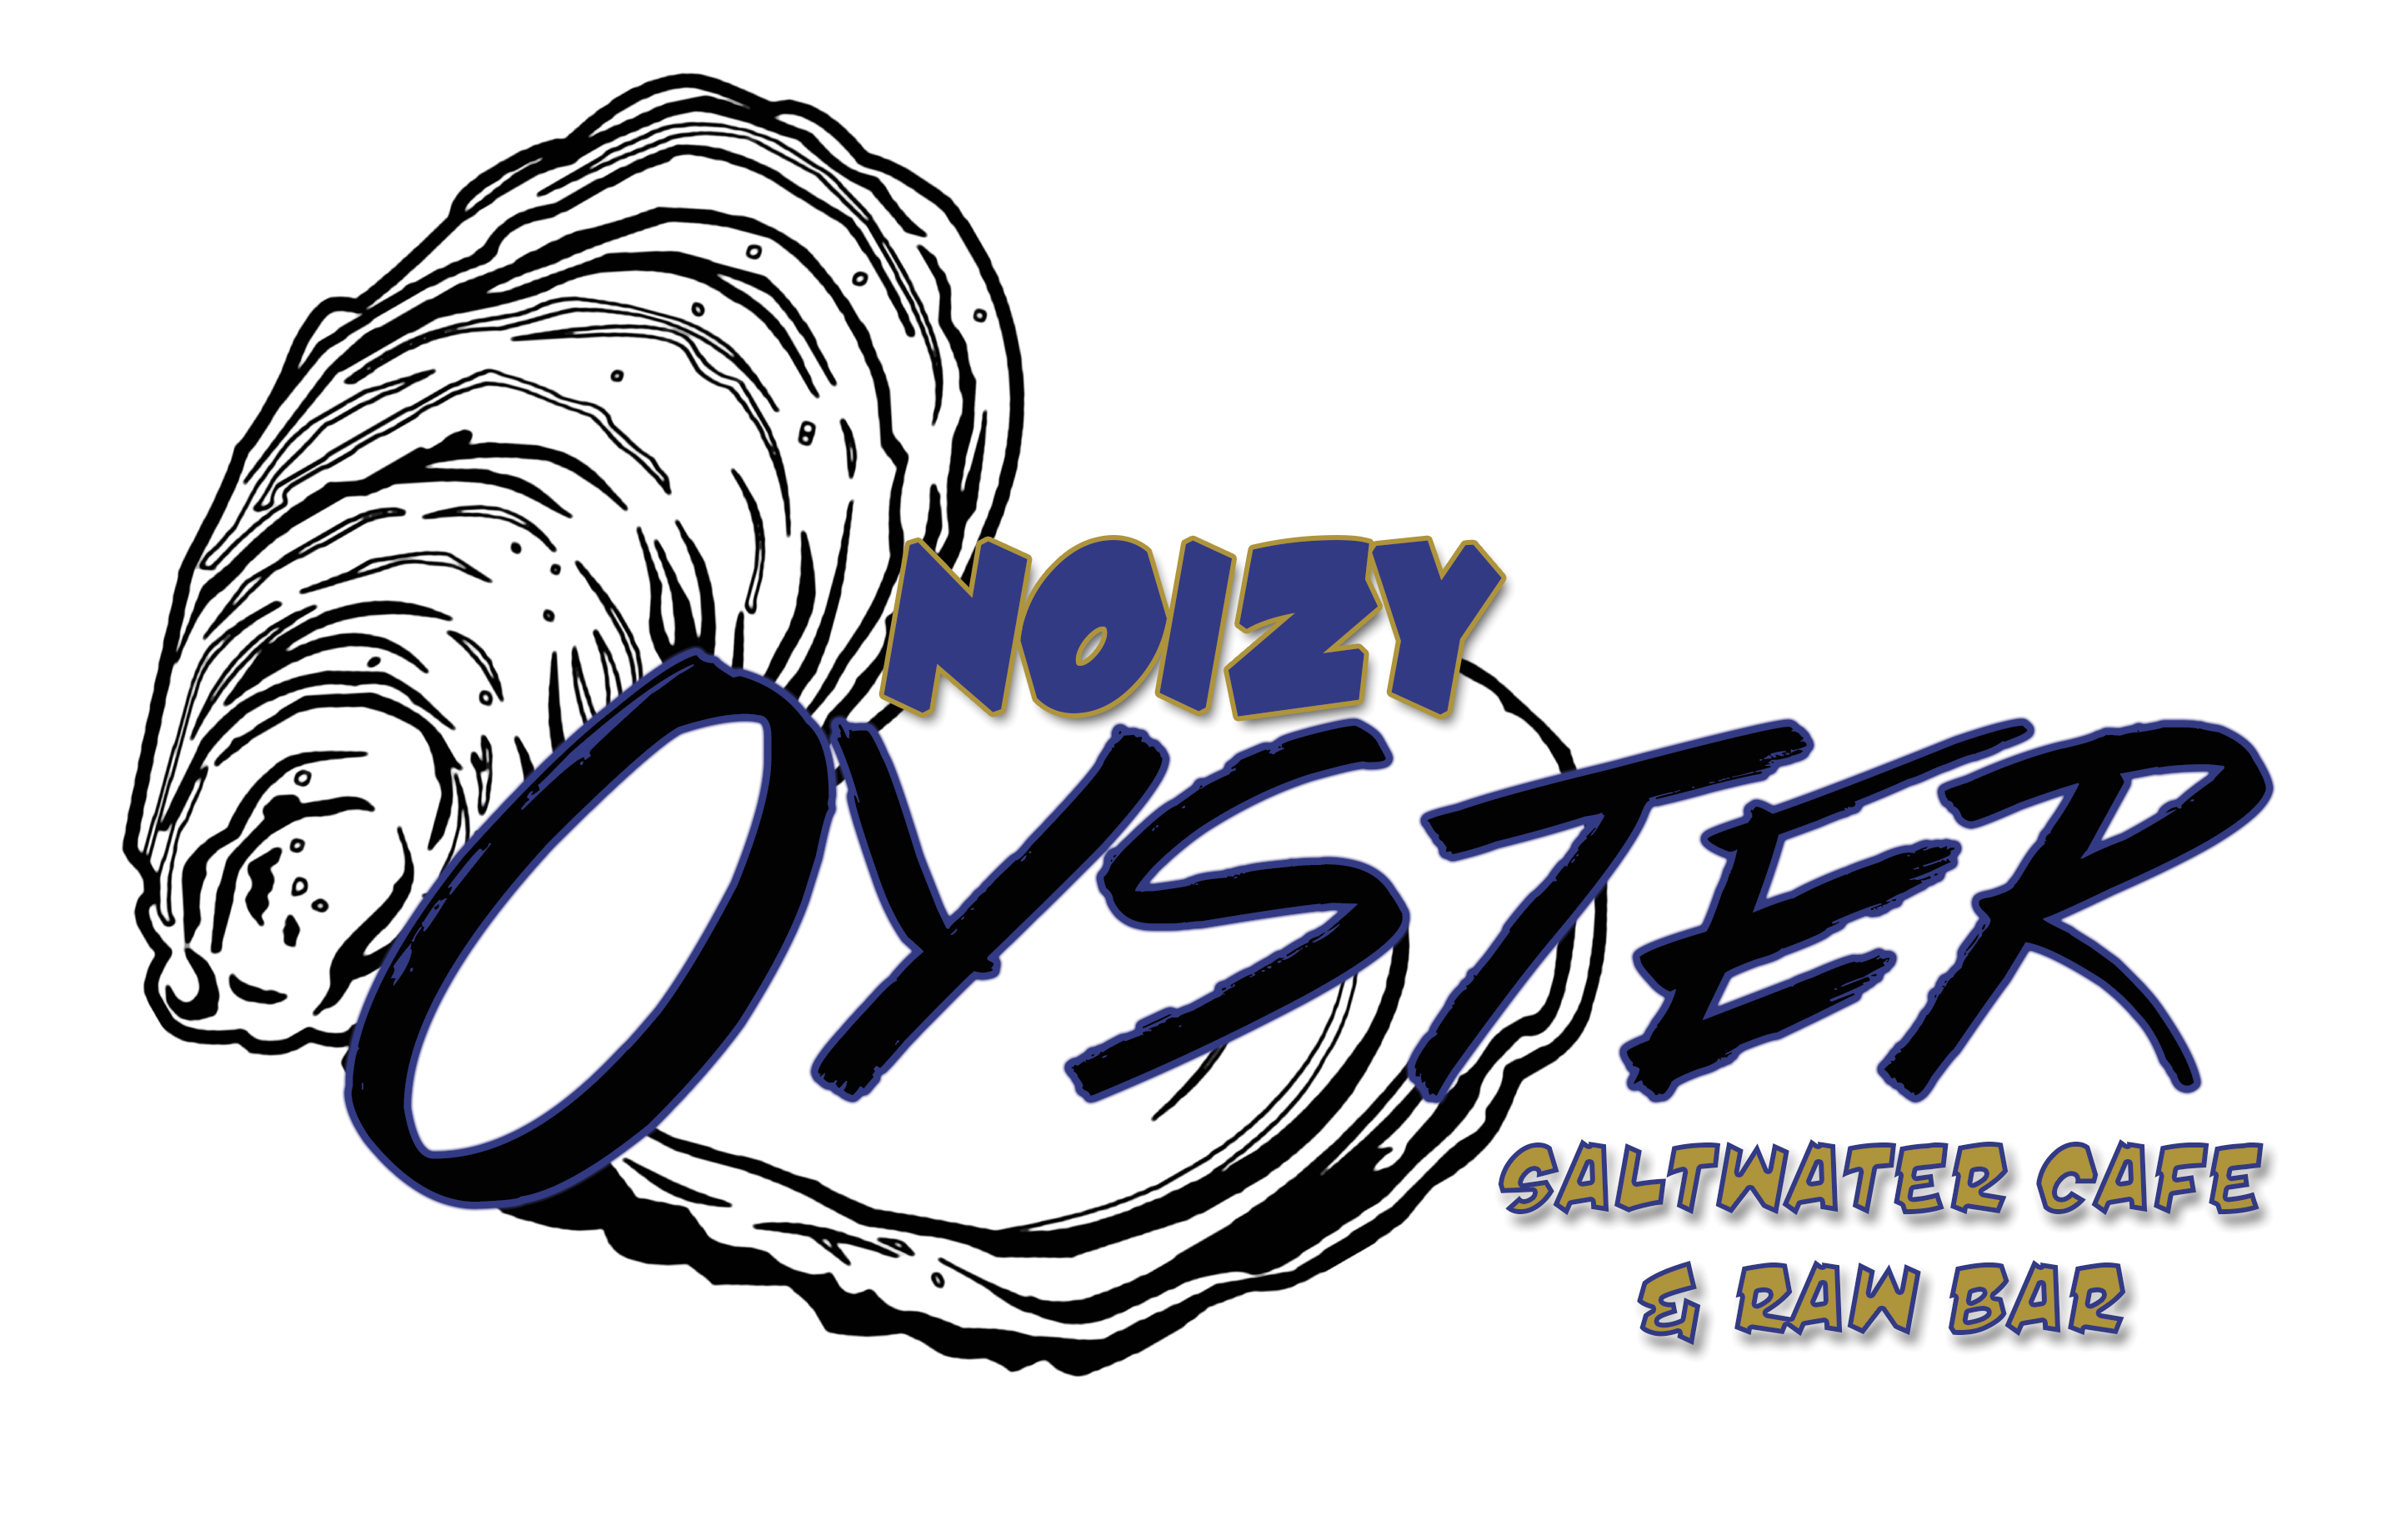 THE NOIZY OYSTER SALTWATER CAFE